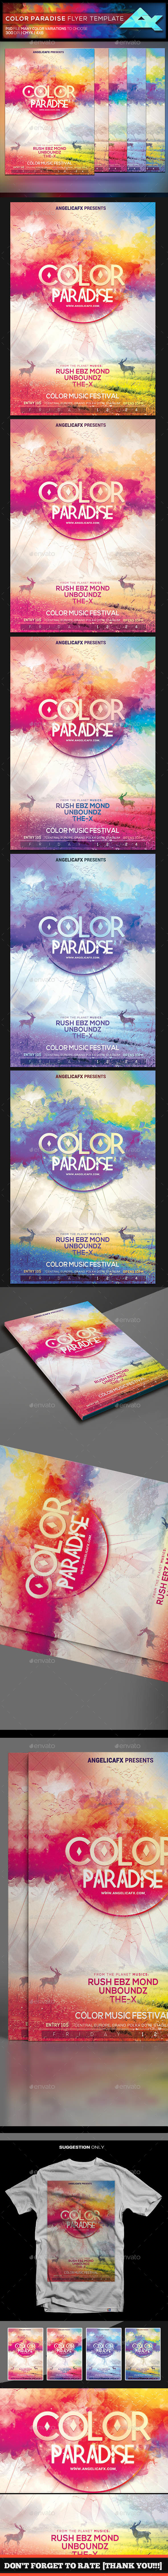 Color Paradise Flyer Template - Flyers Print Templates